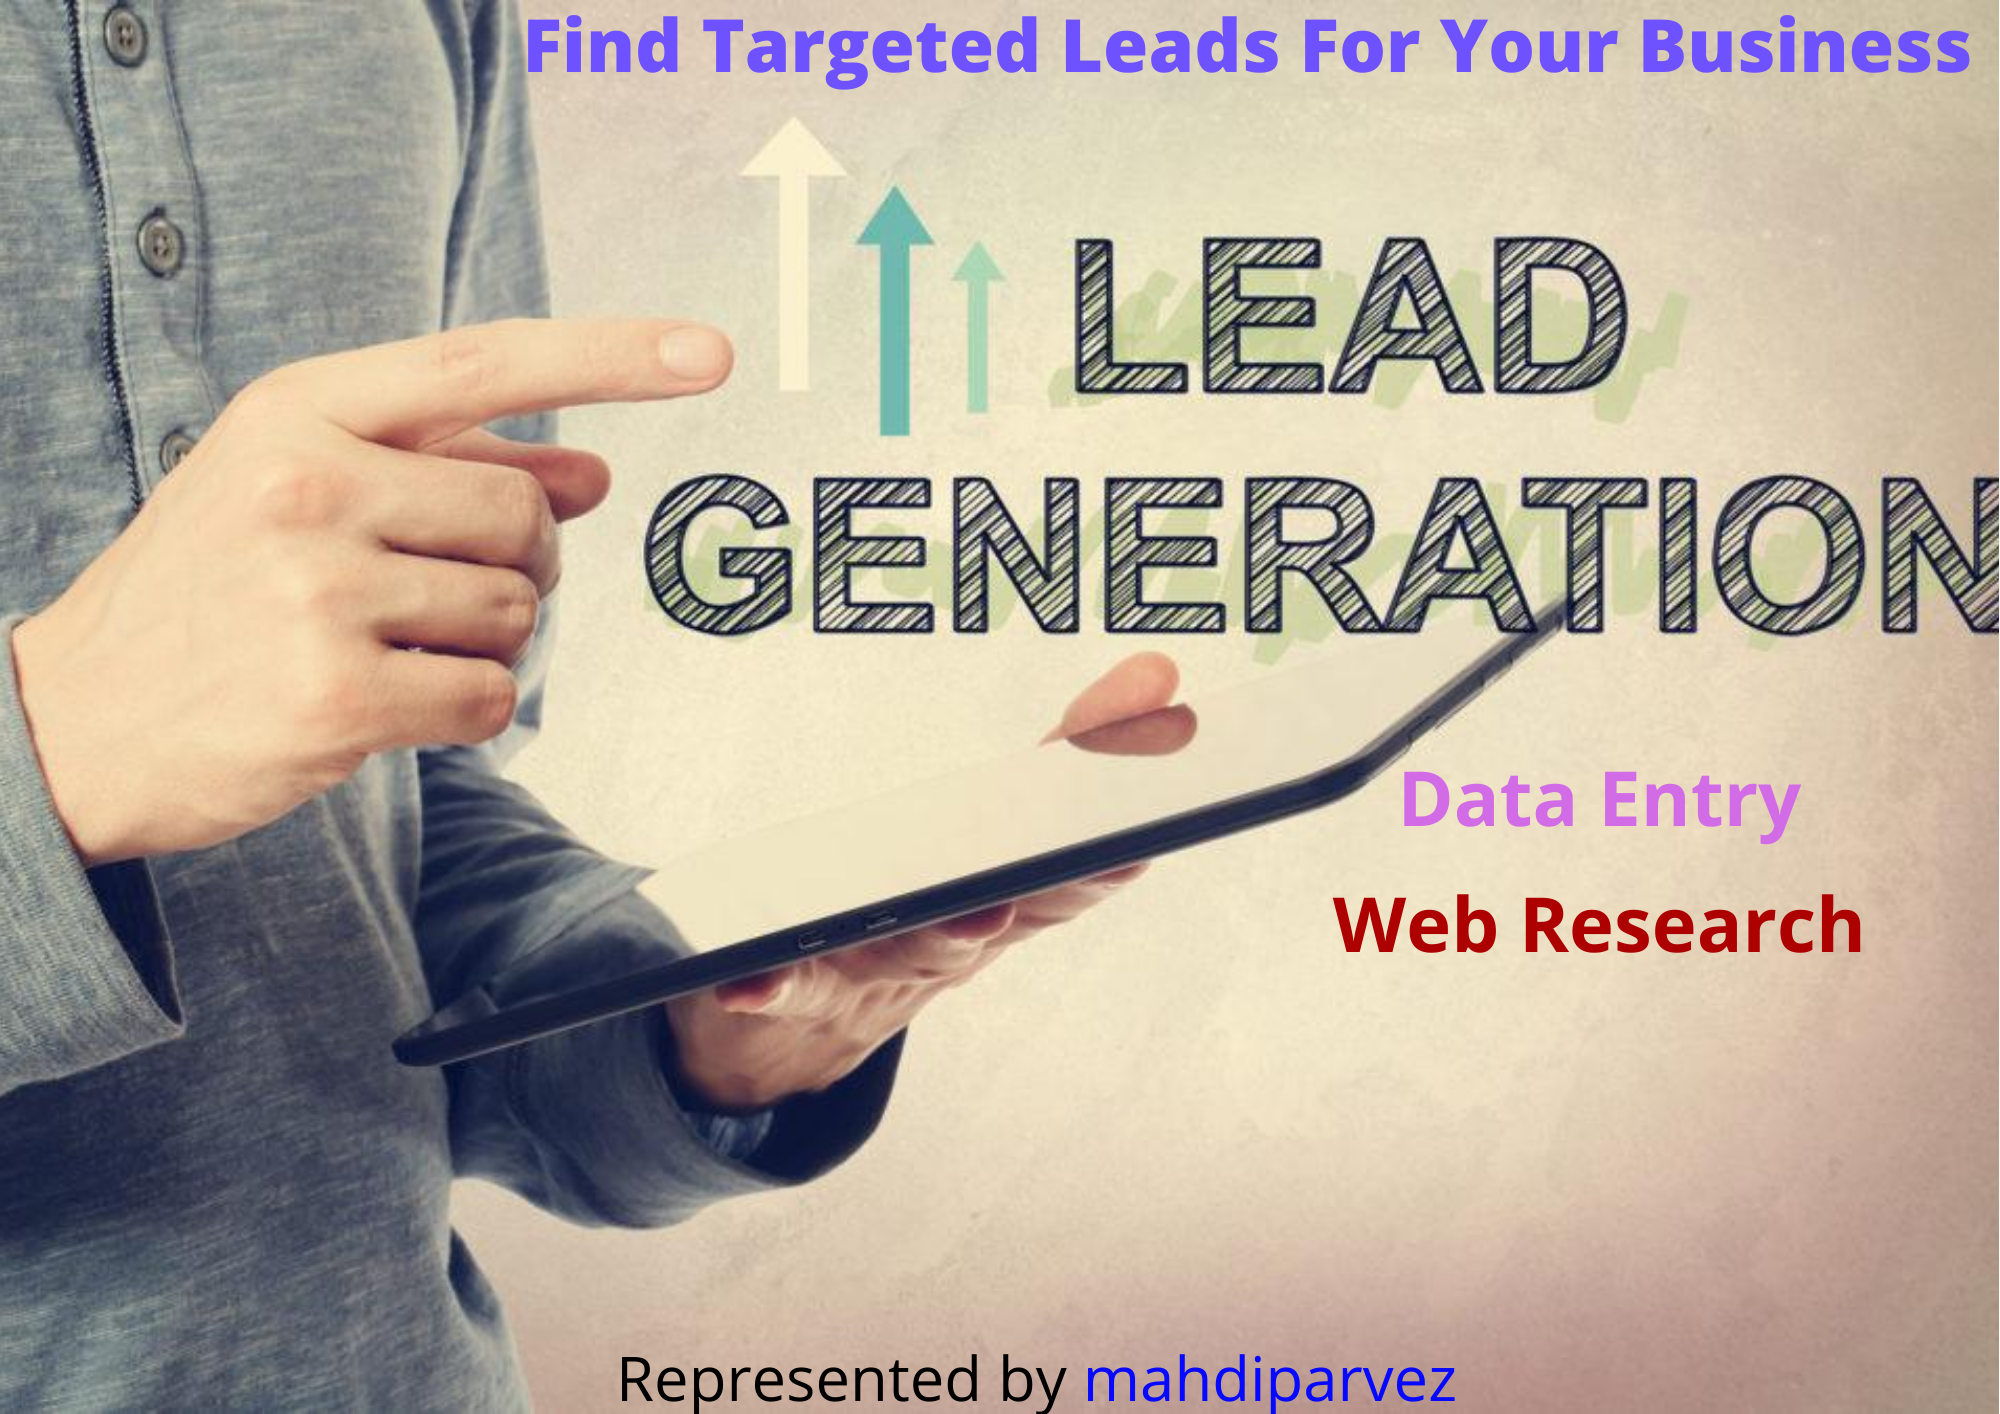 I will do b2b lead generation and linkedin lead generation